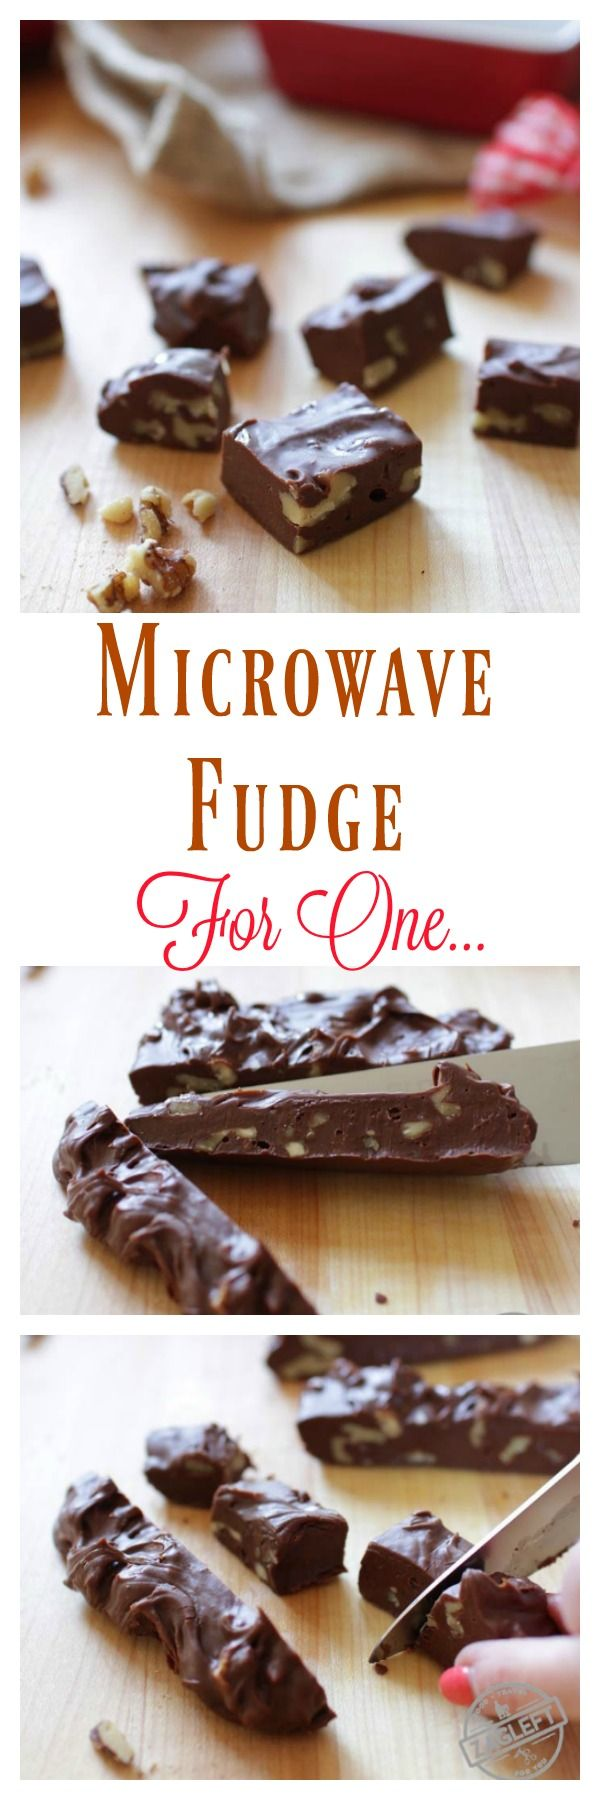 Homemade Microwave Fudge For One – a single serving recipe for rich, smooth, incredible chocolate fudge. One bowl and a microwave is all you need to make this scaled down version of my favorite fudge recipe!   zagleft.com